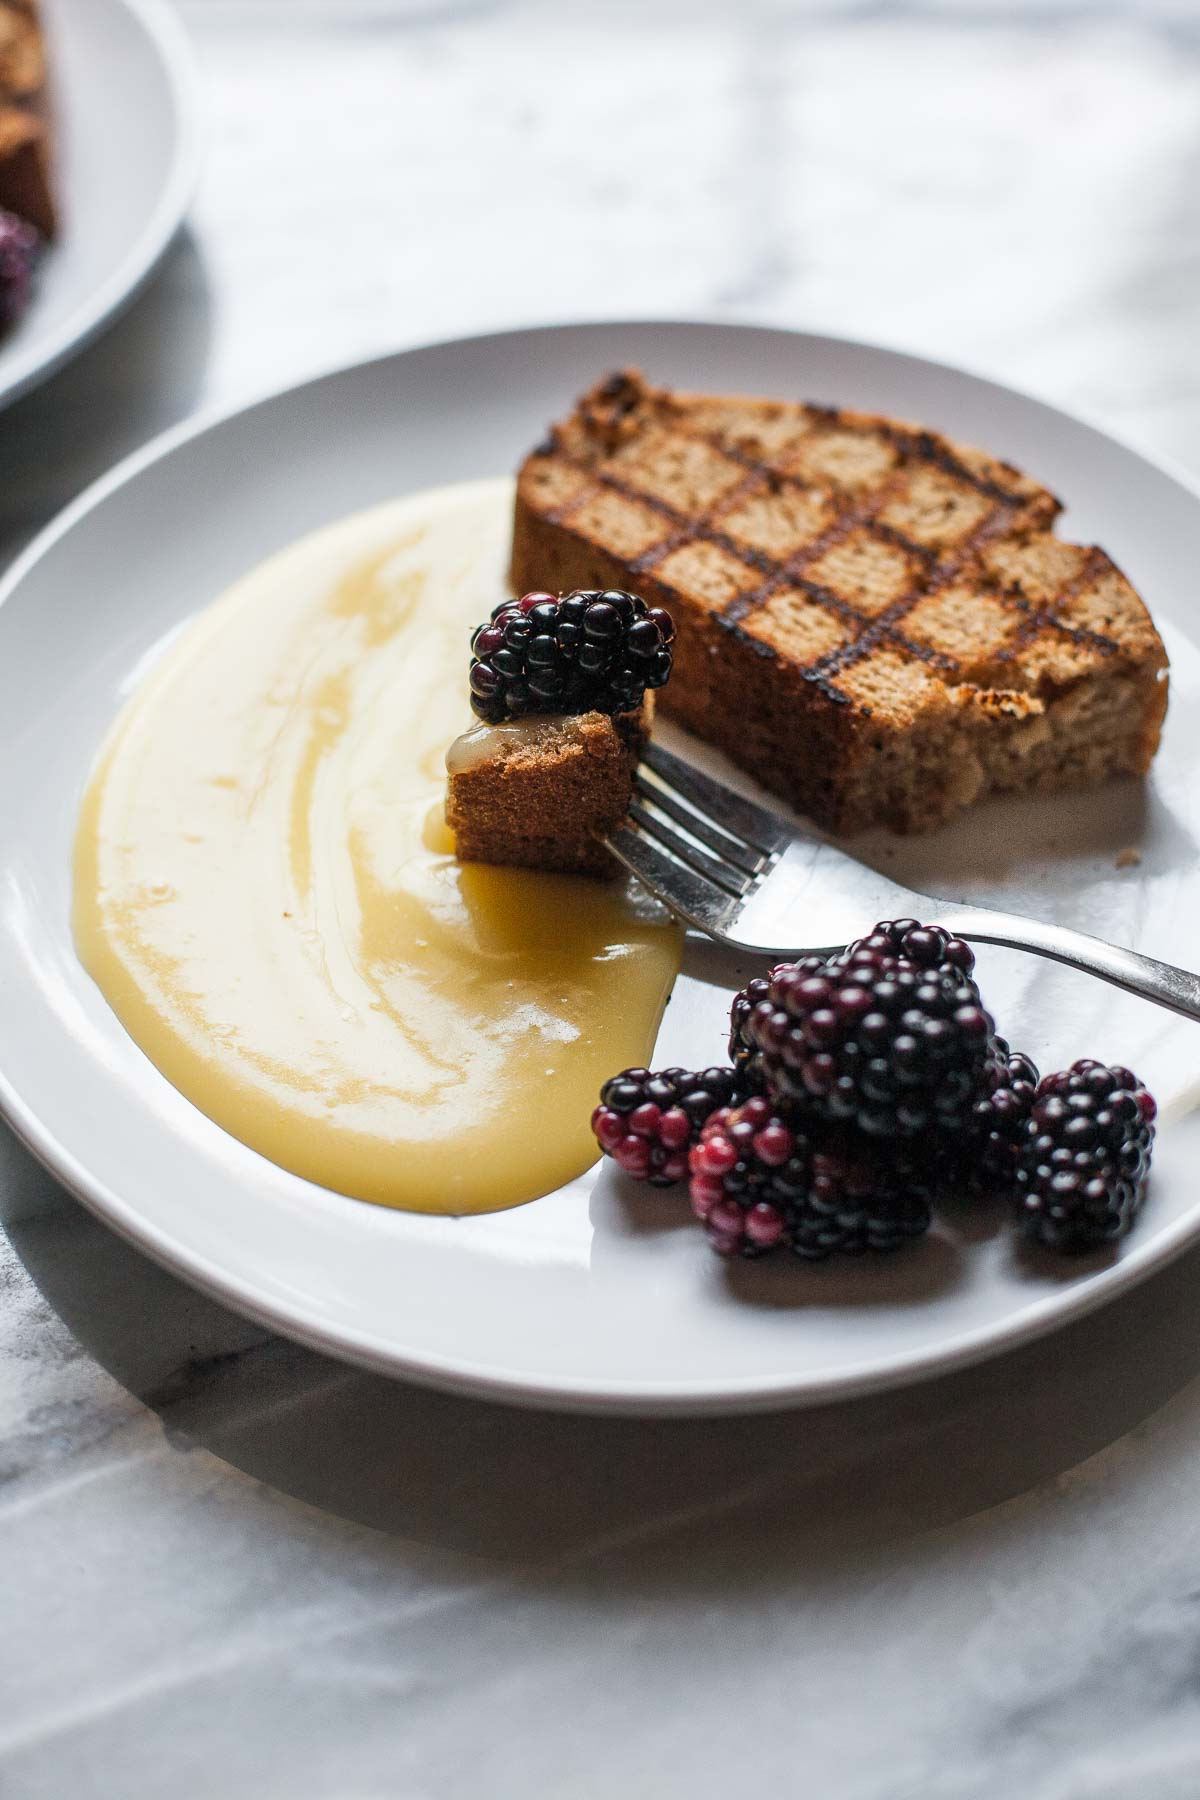 Grilled Pound Cake with Lemon Curd and Berries